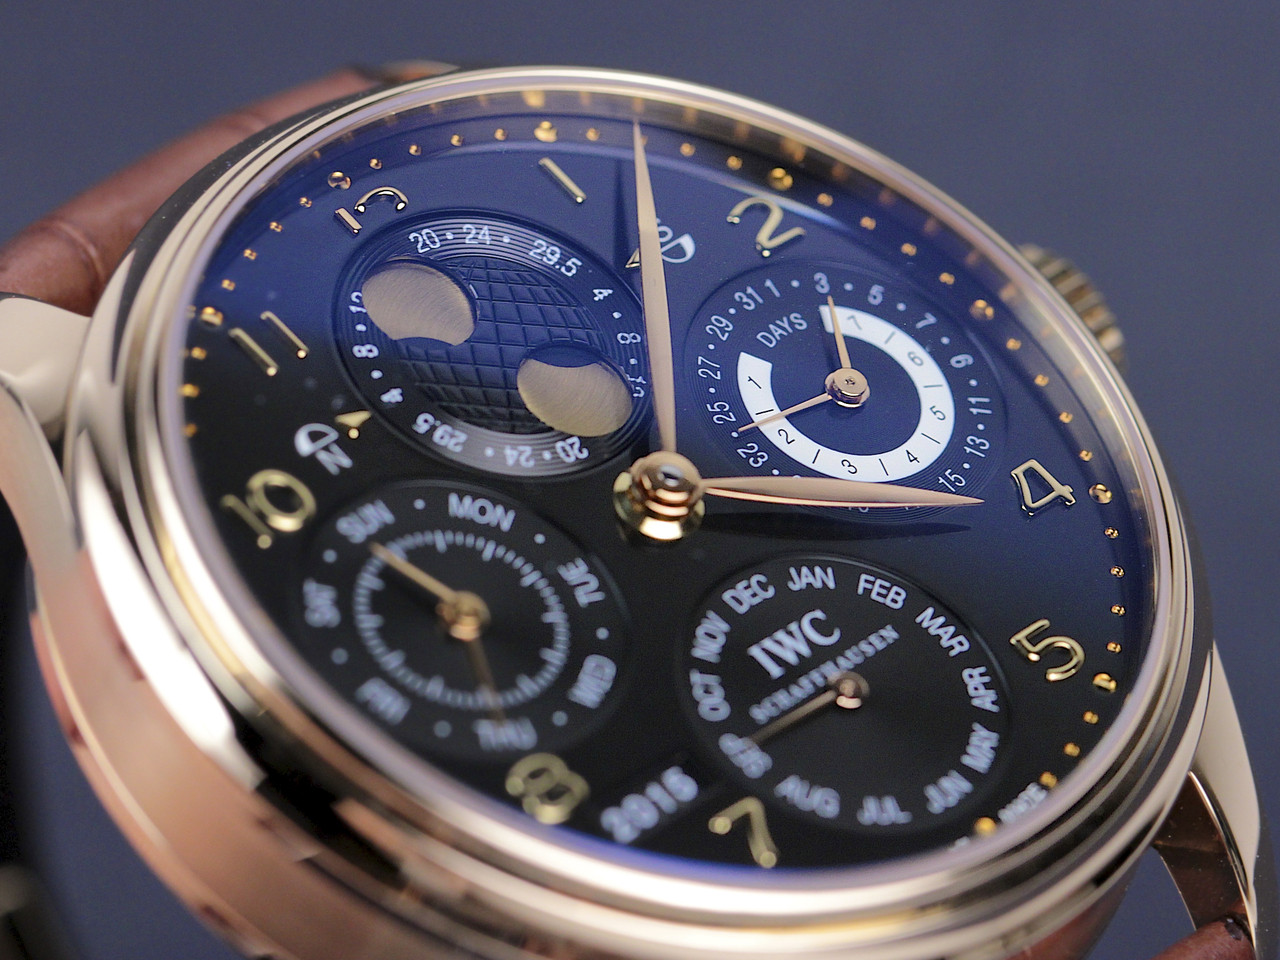 Dial detail - IWC Watch - Portuguese Perpetual Calendar Rose Gold IW502119 - Legend of Time - Chicago Watch Center